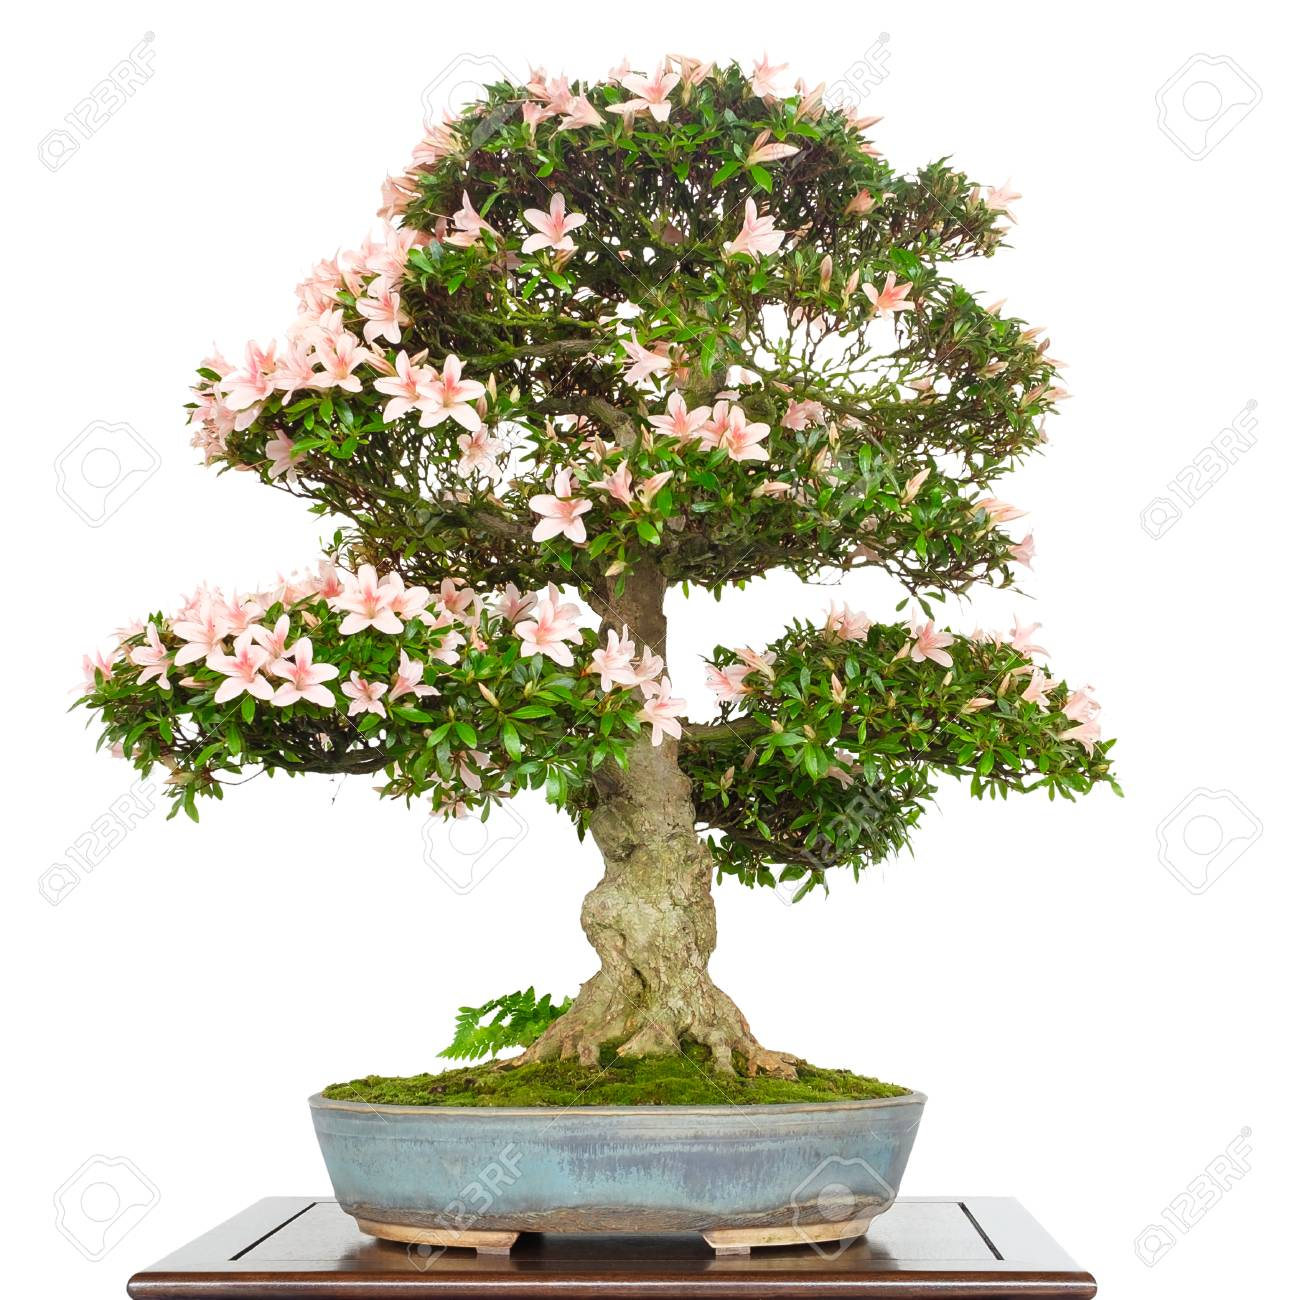 Azalea Rhododendron As Bonsai Tree With Pink Flowers And Old Stock